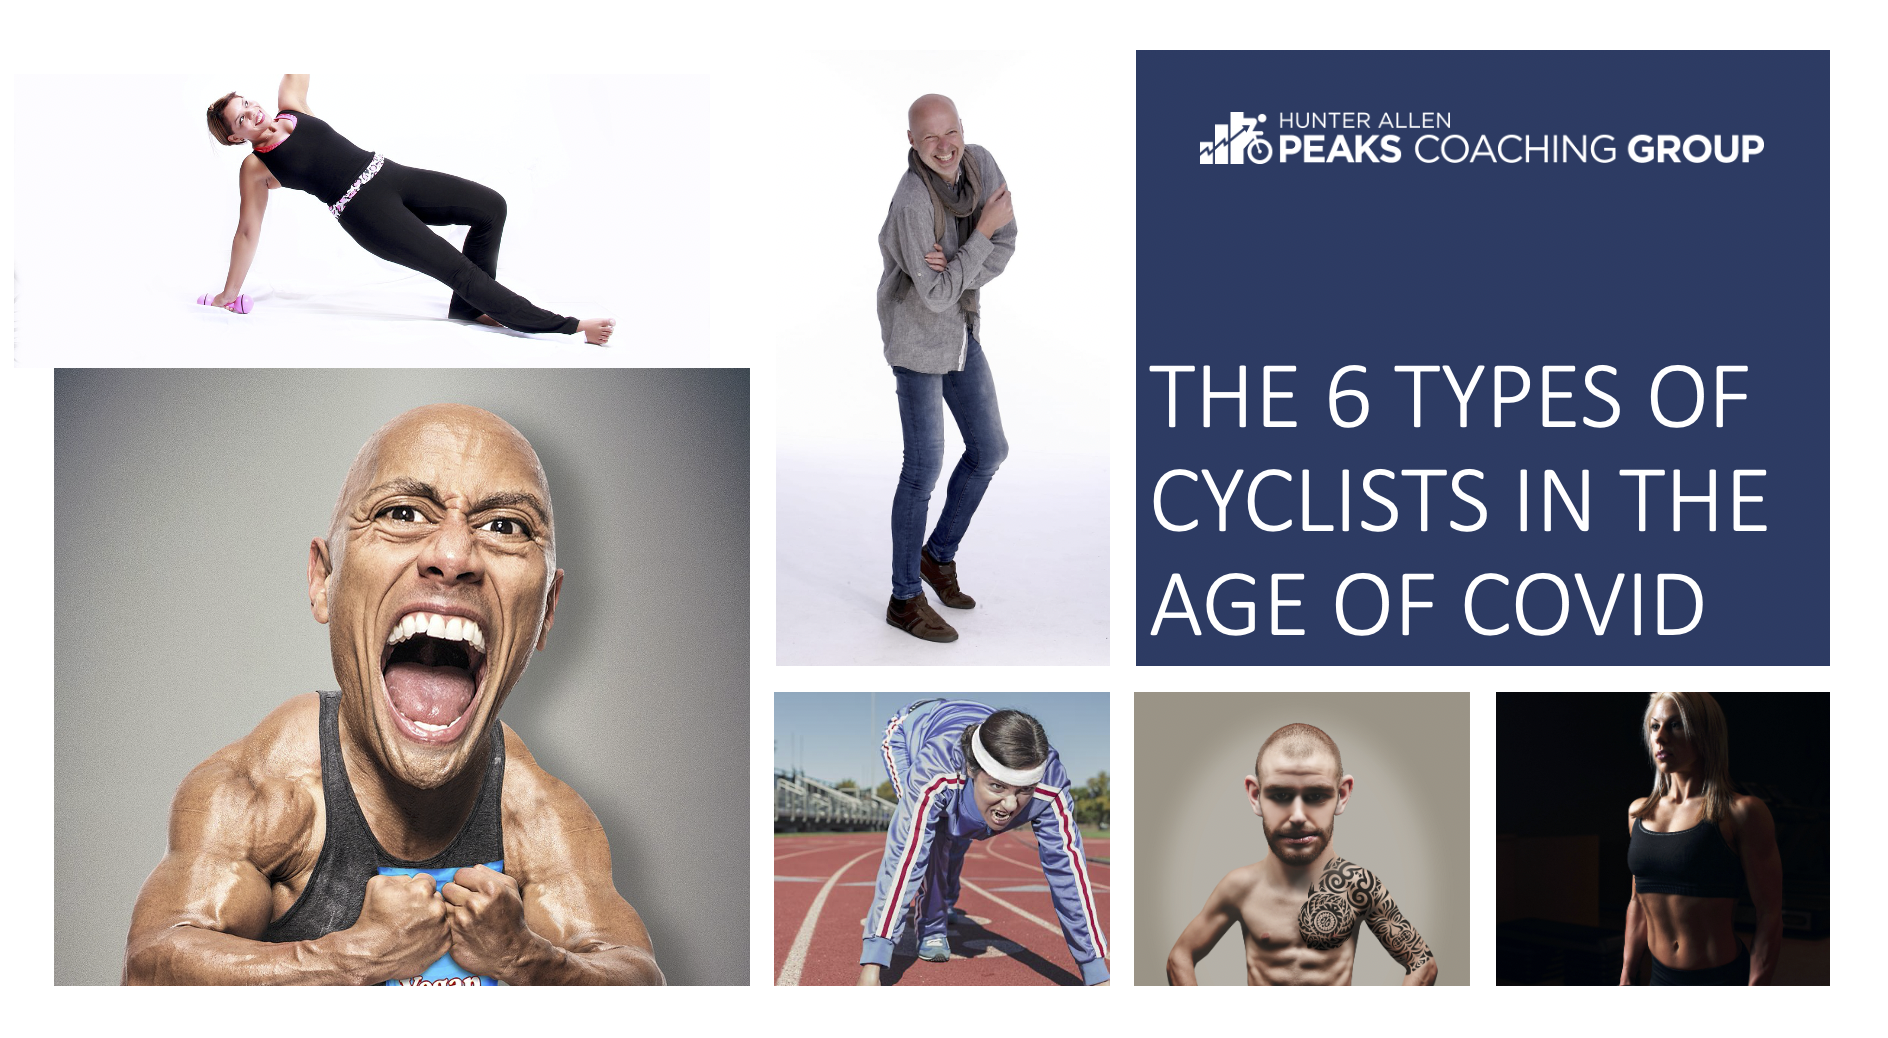 the 6 types of cyclists during the age of covid